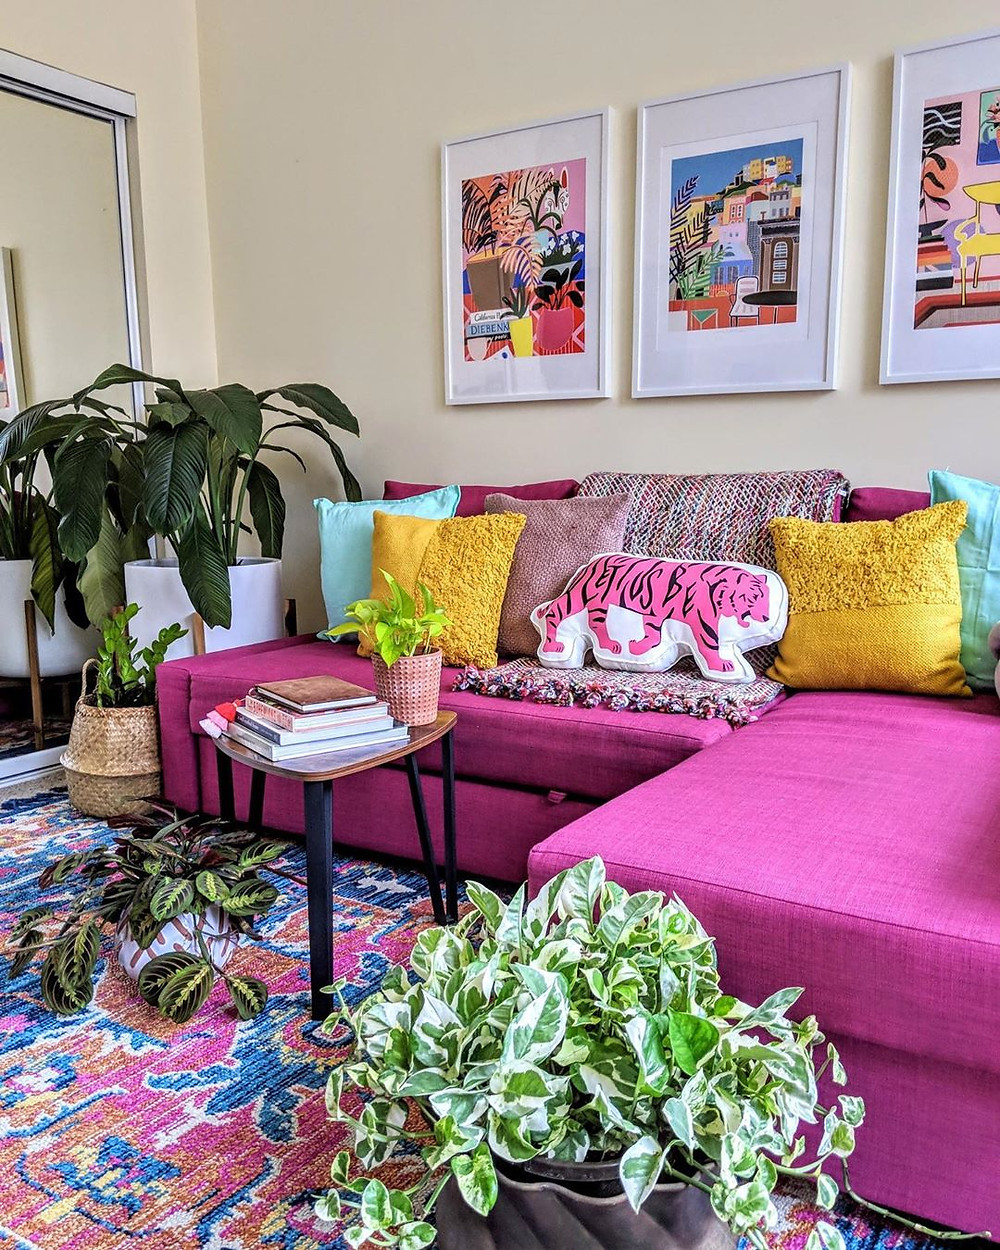 colorful eclectic living room design with vibrant rug and artwork and pink sofa